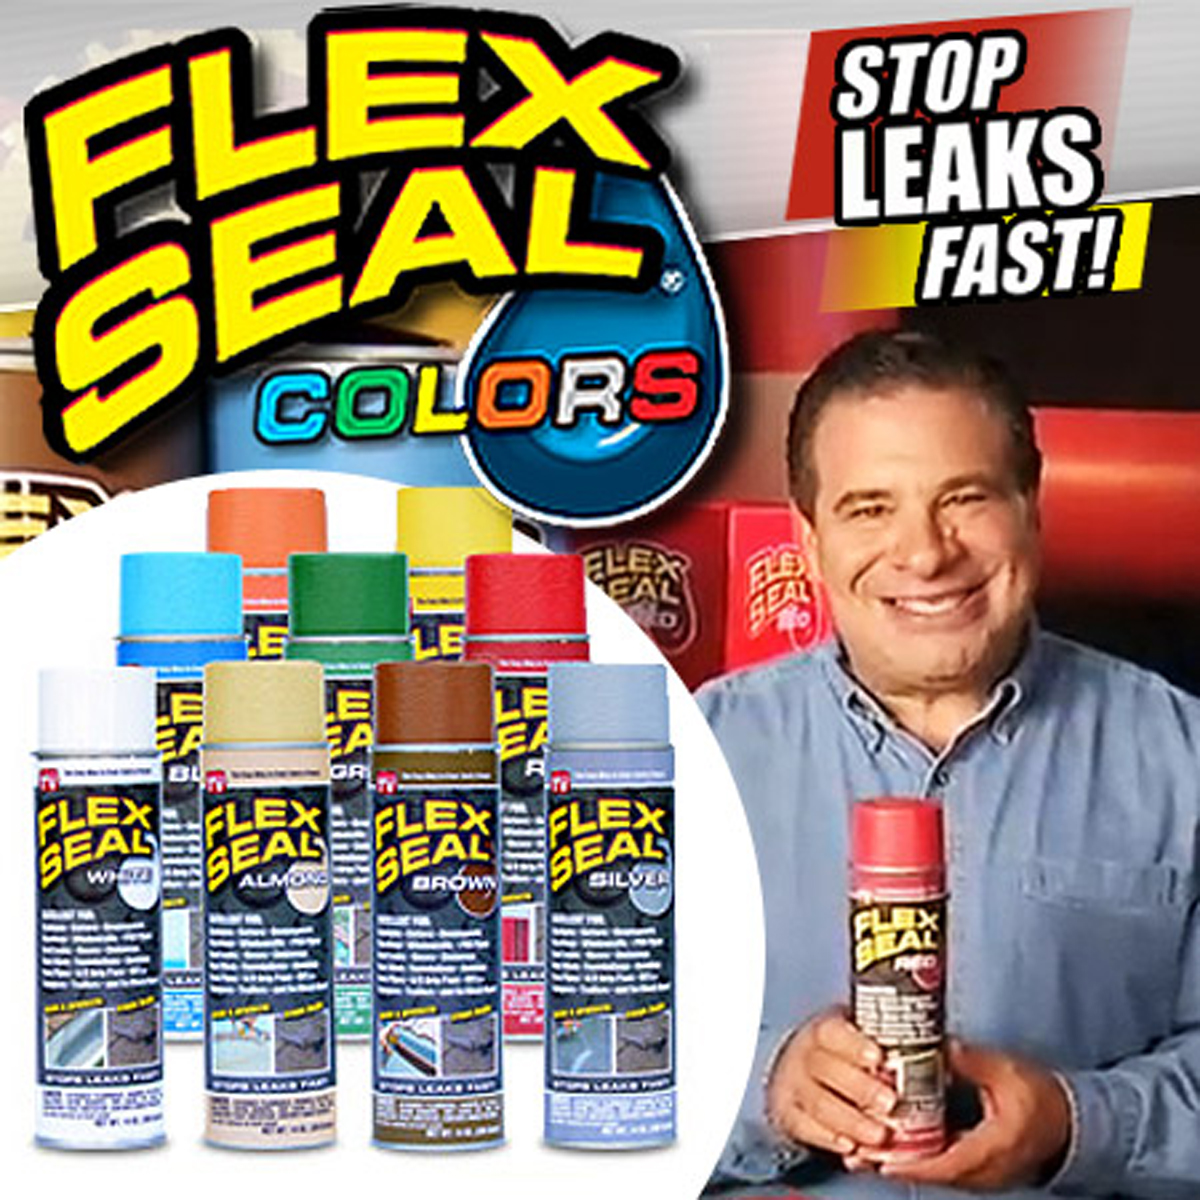 Flex Seal Colors